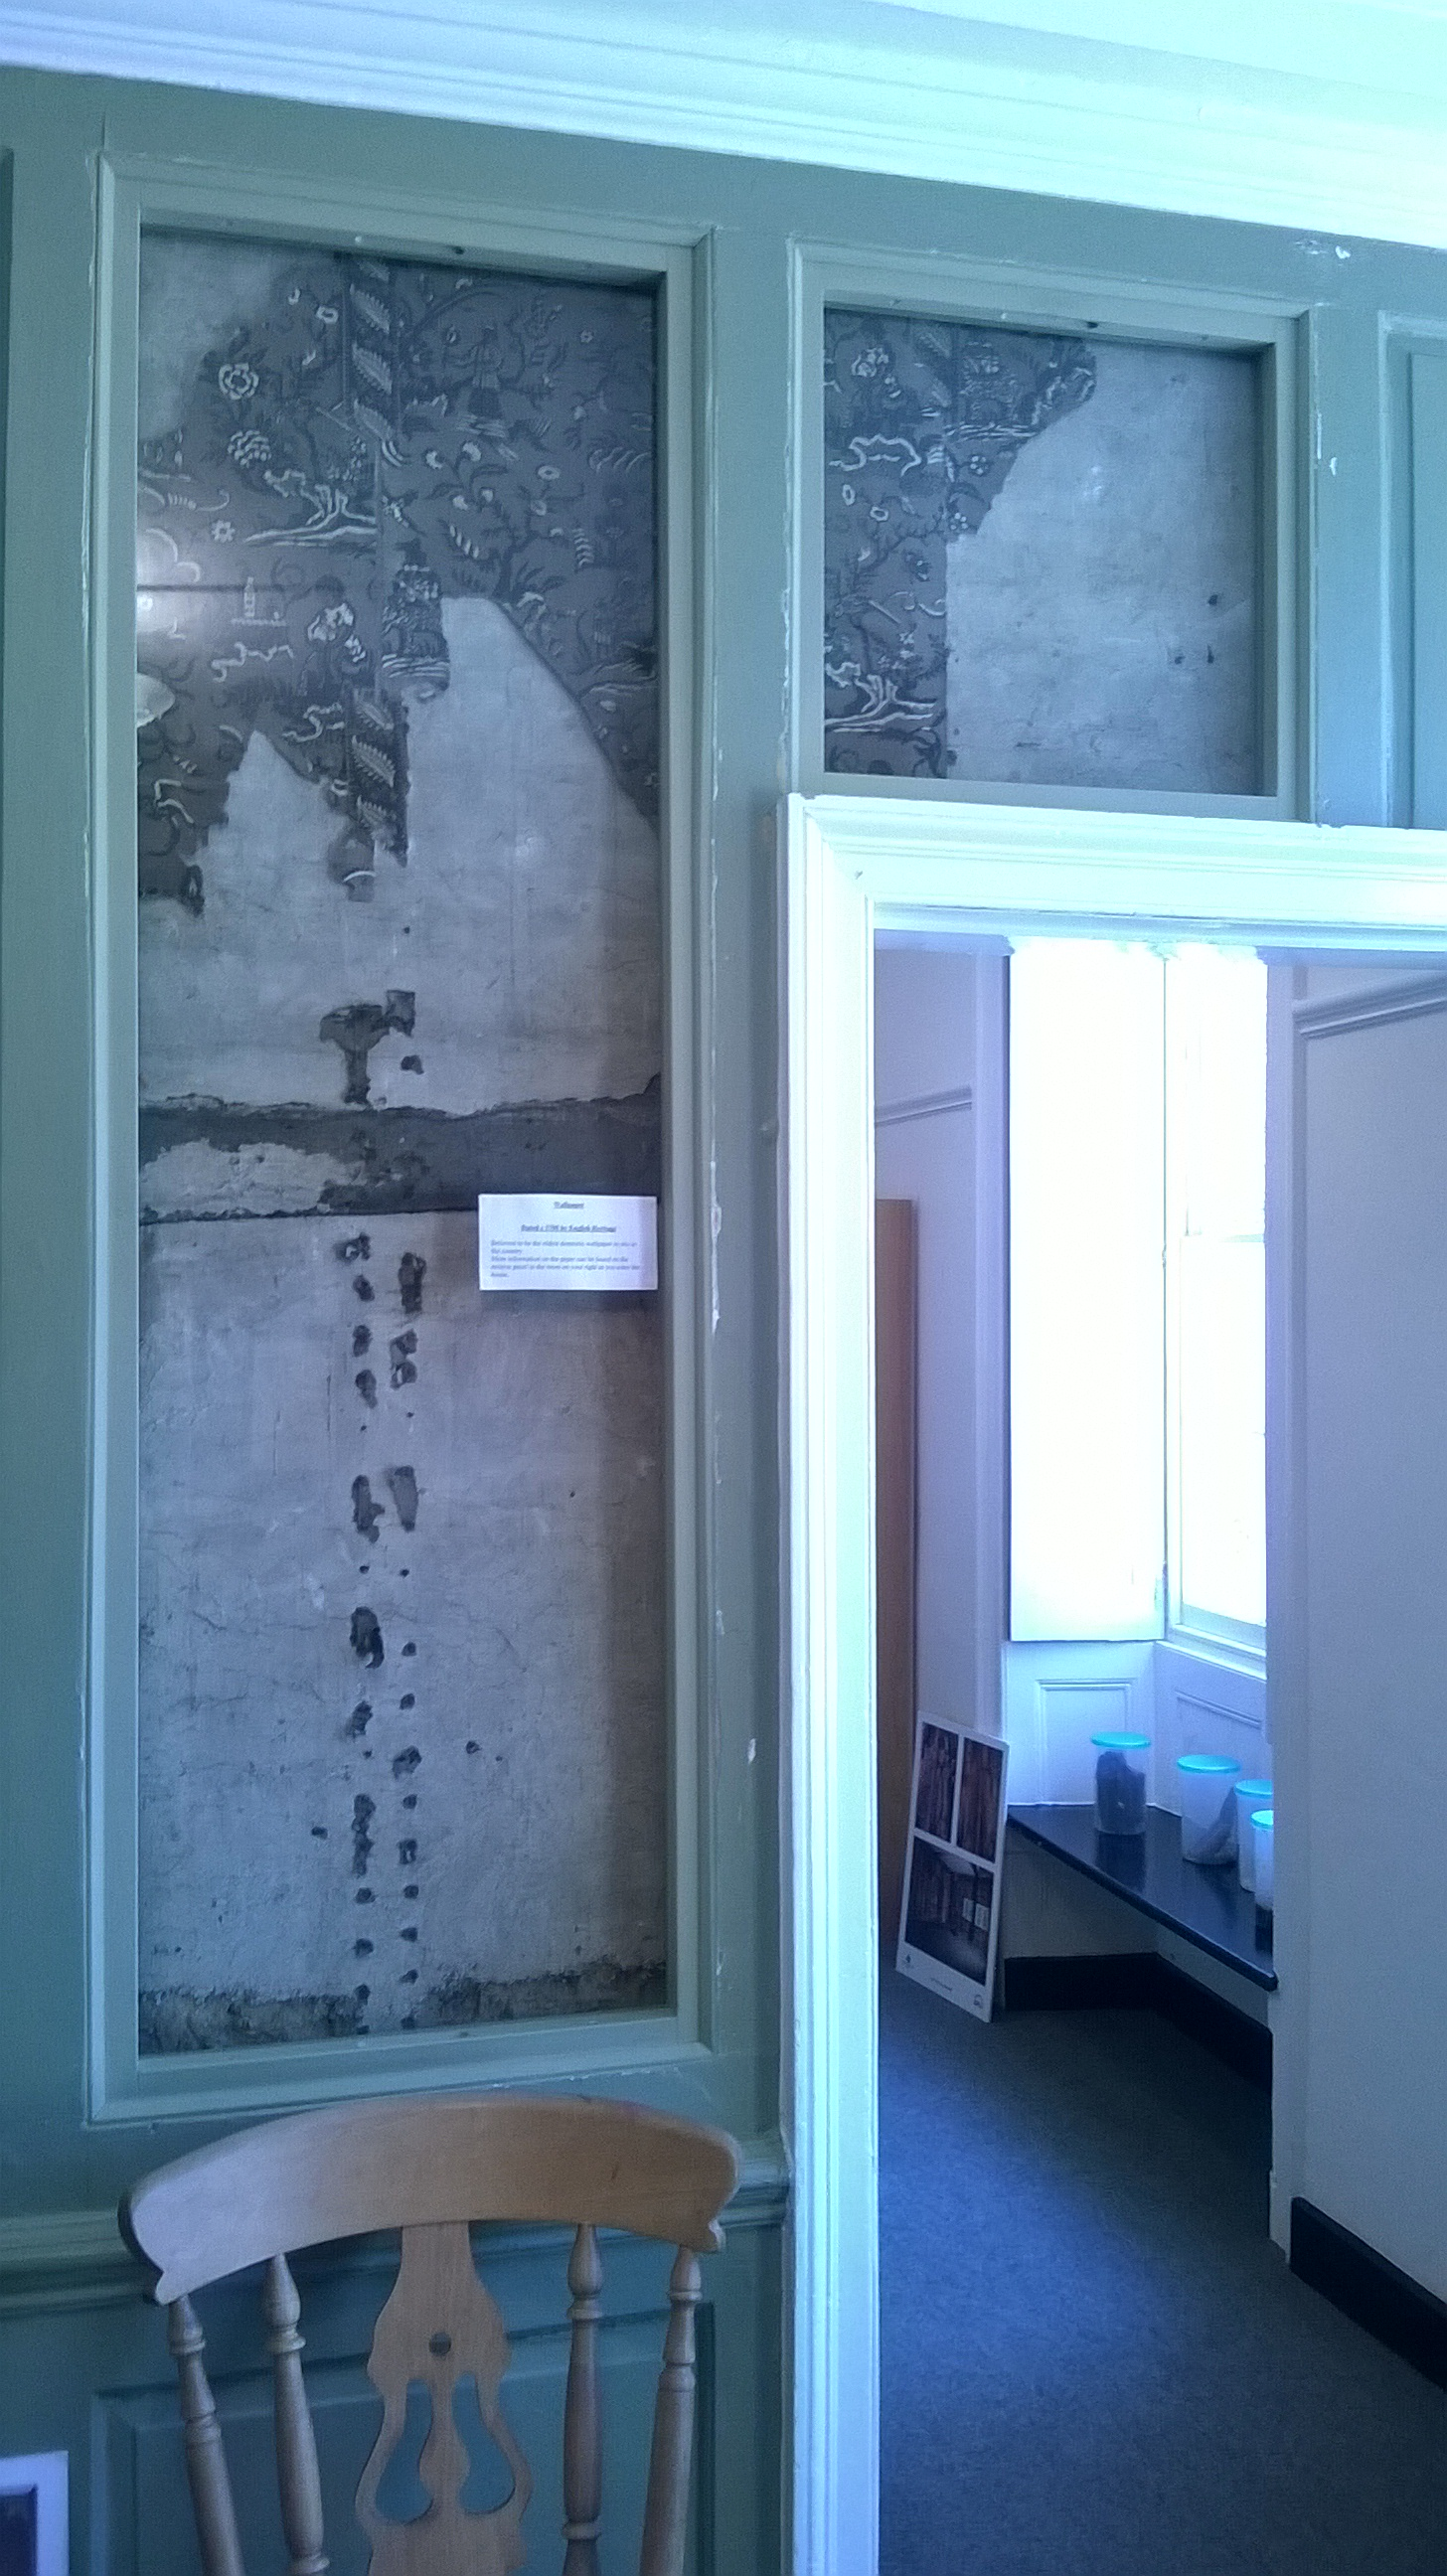 Remains of 18th century wallpaper displayed in Manor Farm House Entrance Hall